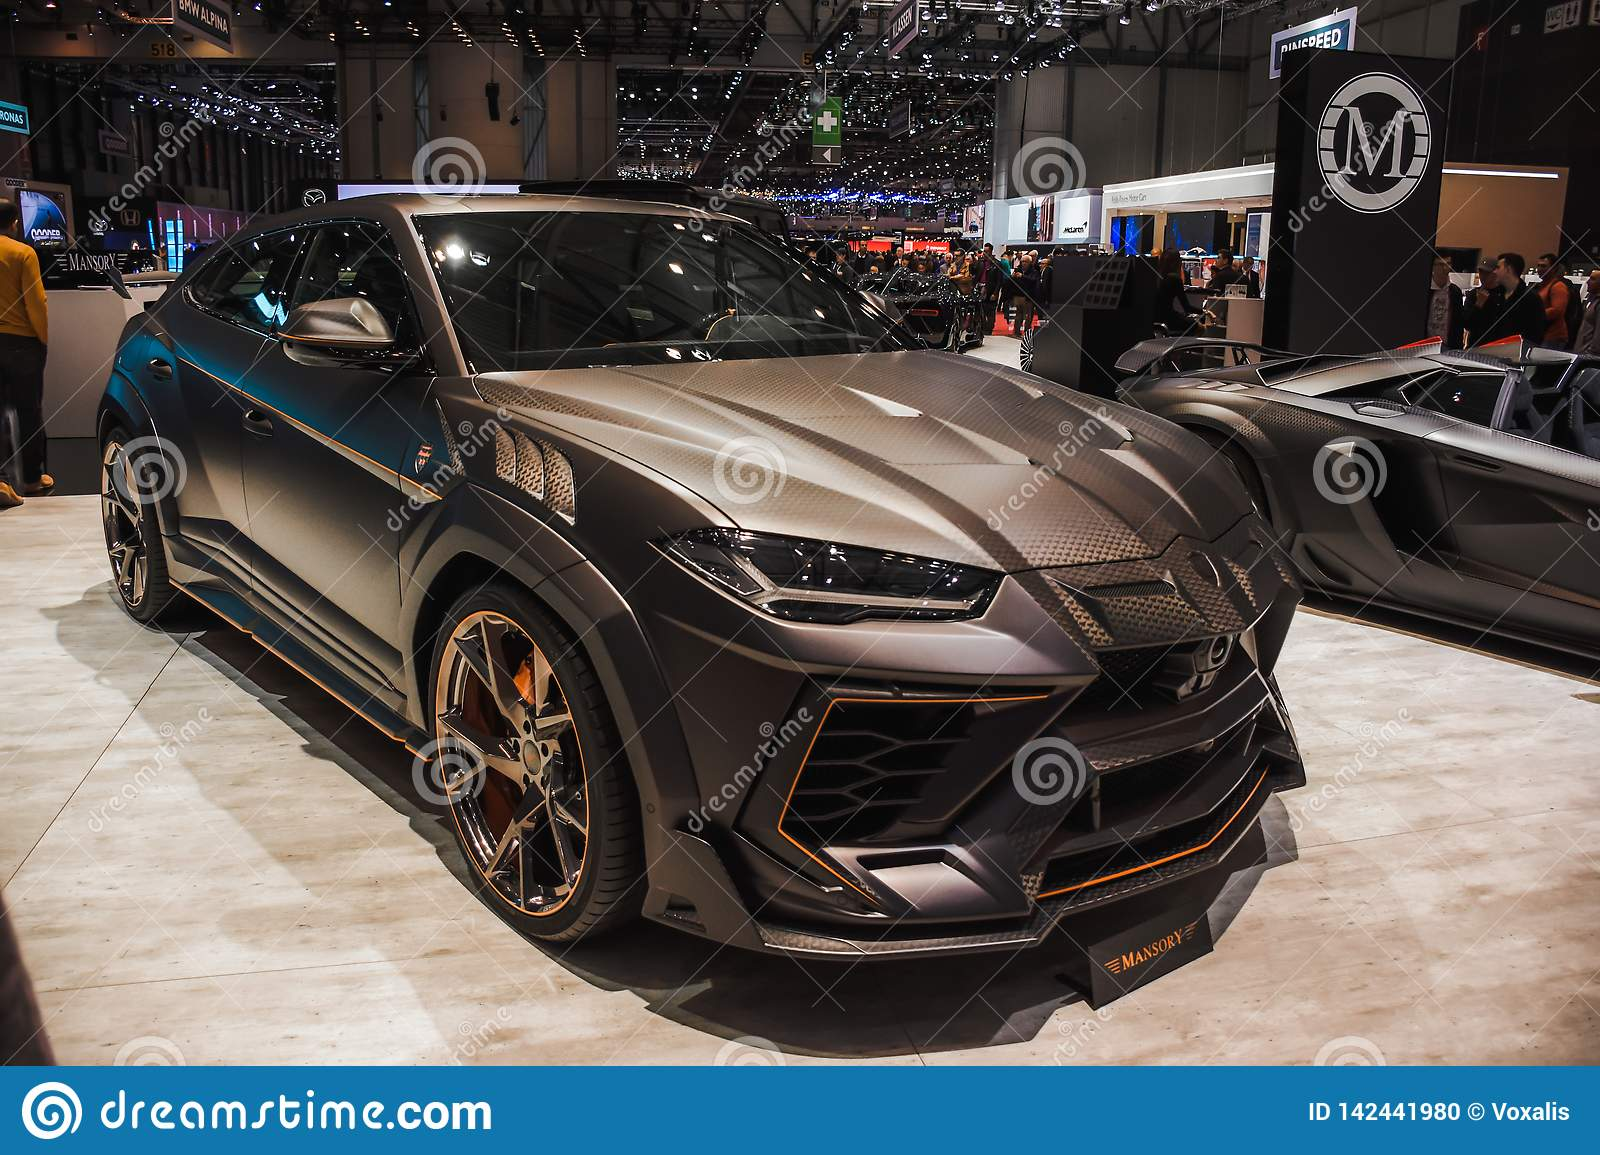 New Lamborghini Urus  Exhibition Center In Geneva In 2019